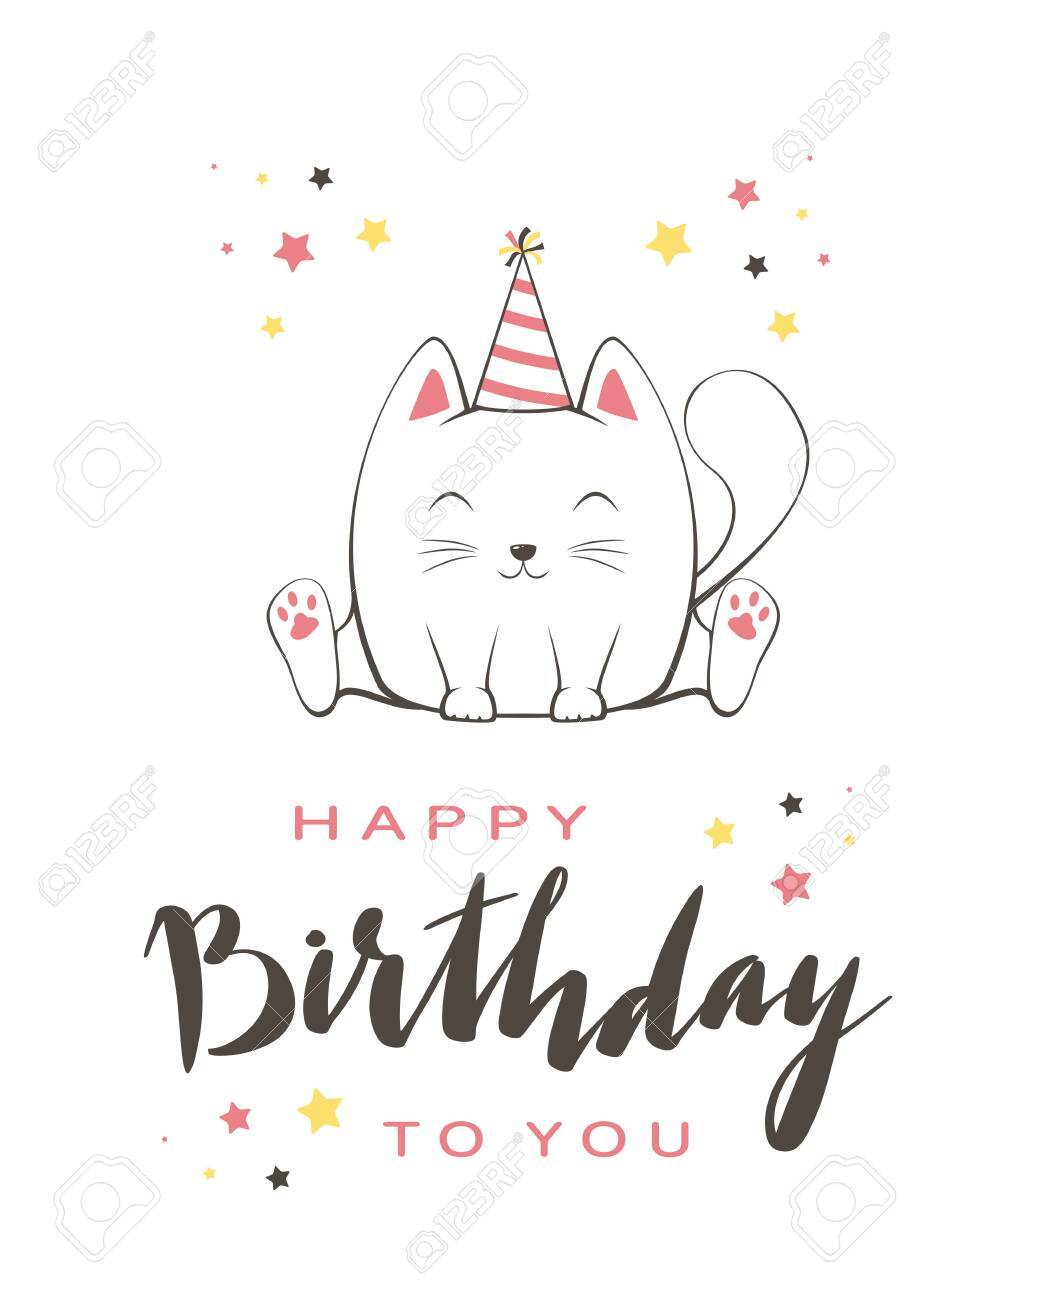 Happy Birthday Cartoon Images : happy, birthday, cartoon, images, Lettering, Happy, Birthday, Greeting, Cartoon, Style., Vector.., Royalty, Cliparts,, Vectors,, Stock, Illustration., Image, 127740915.